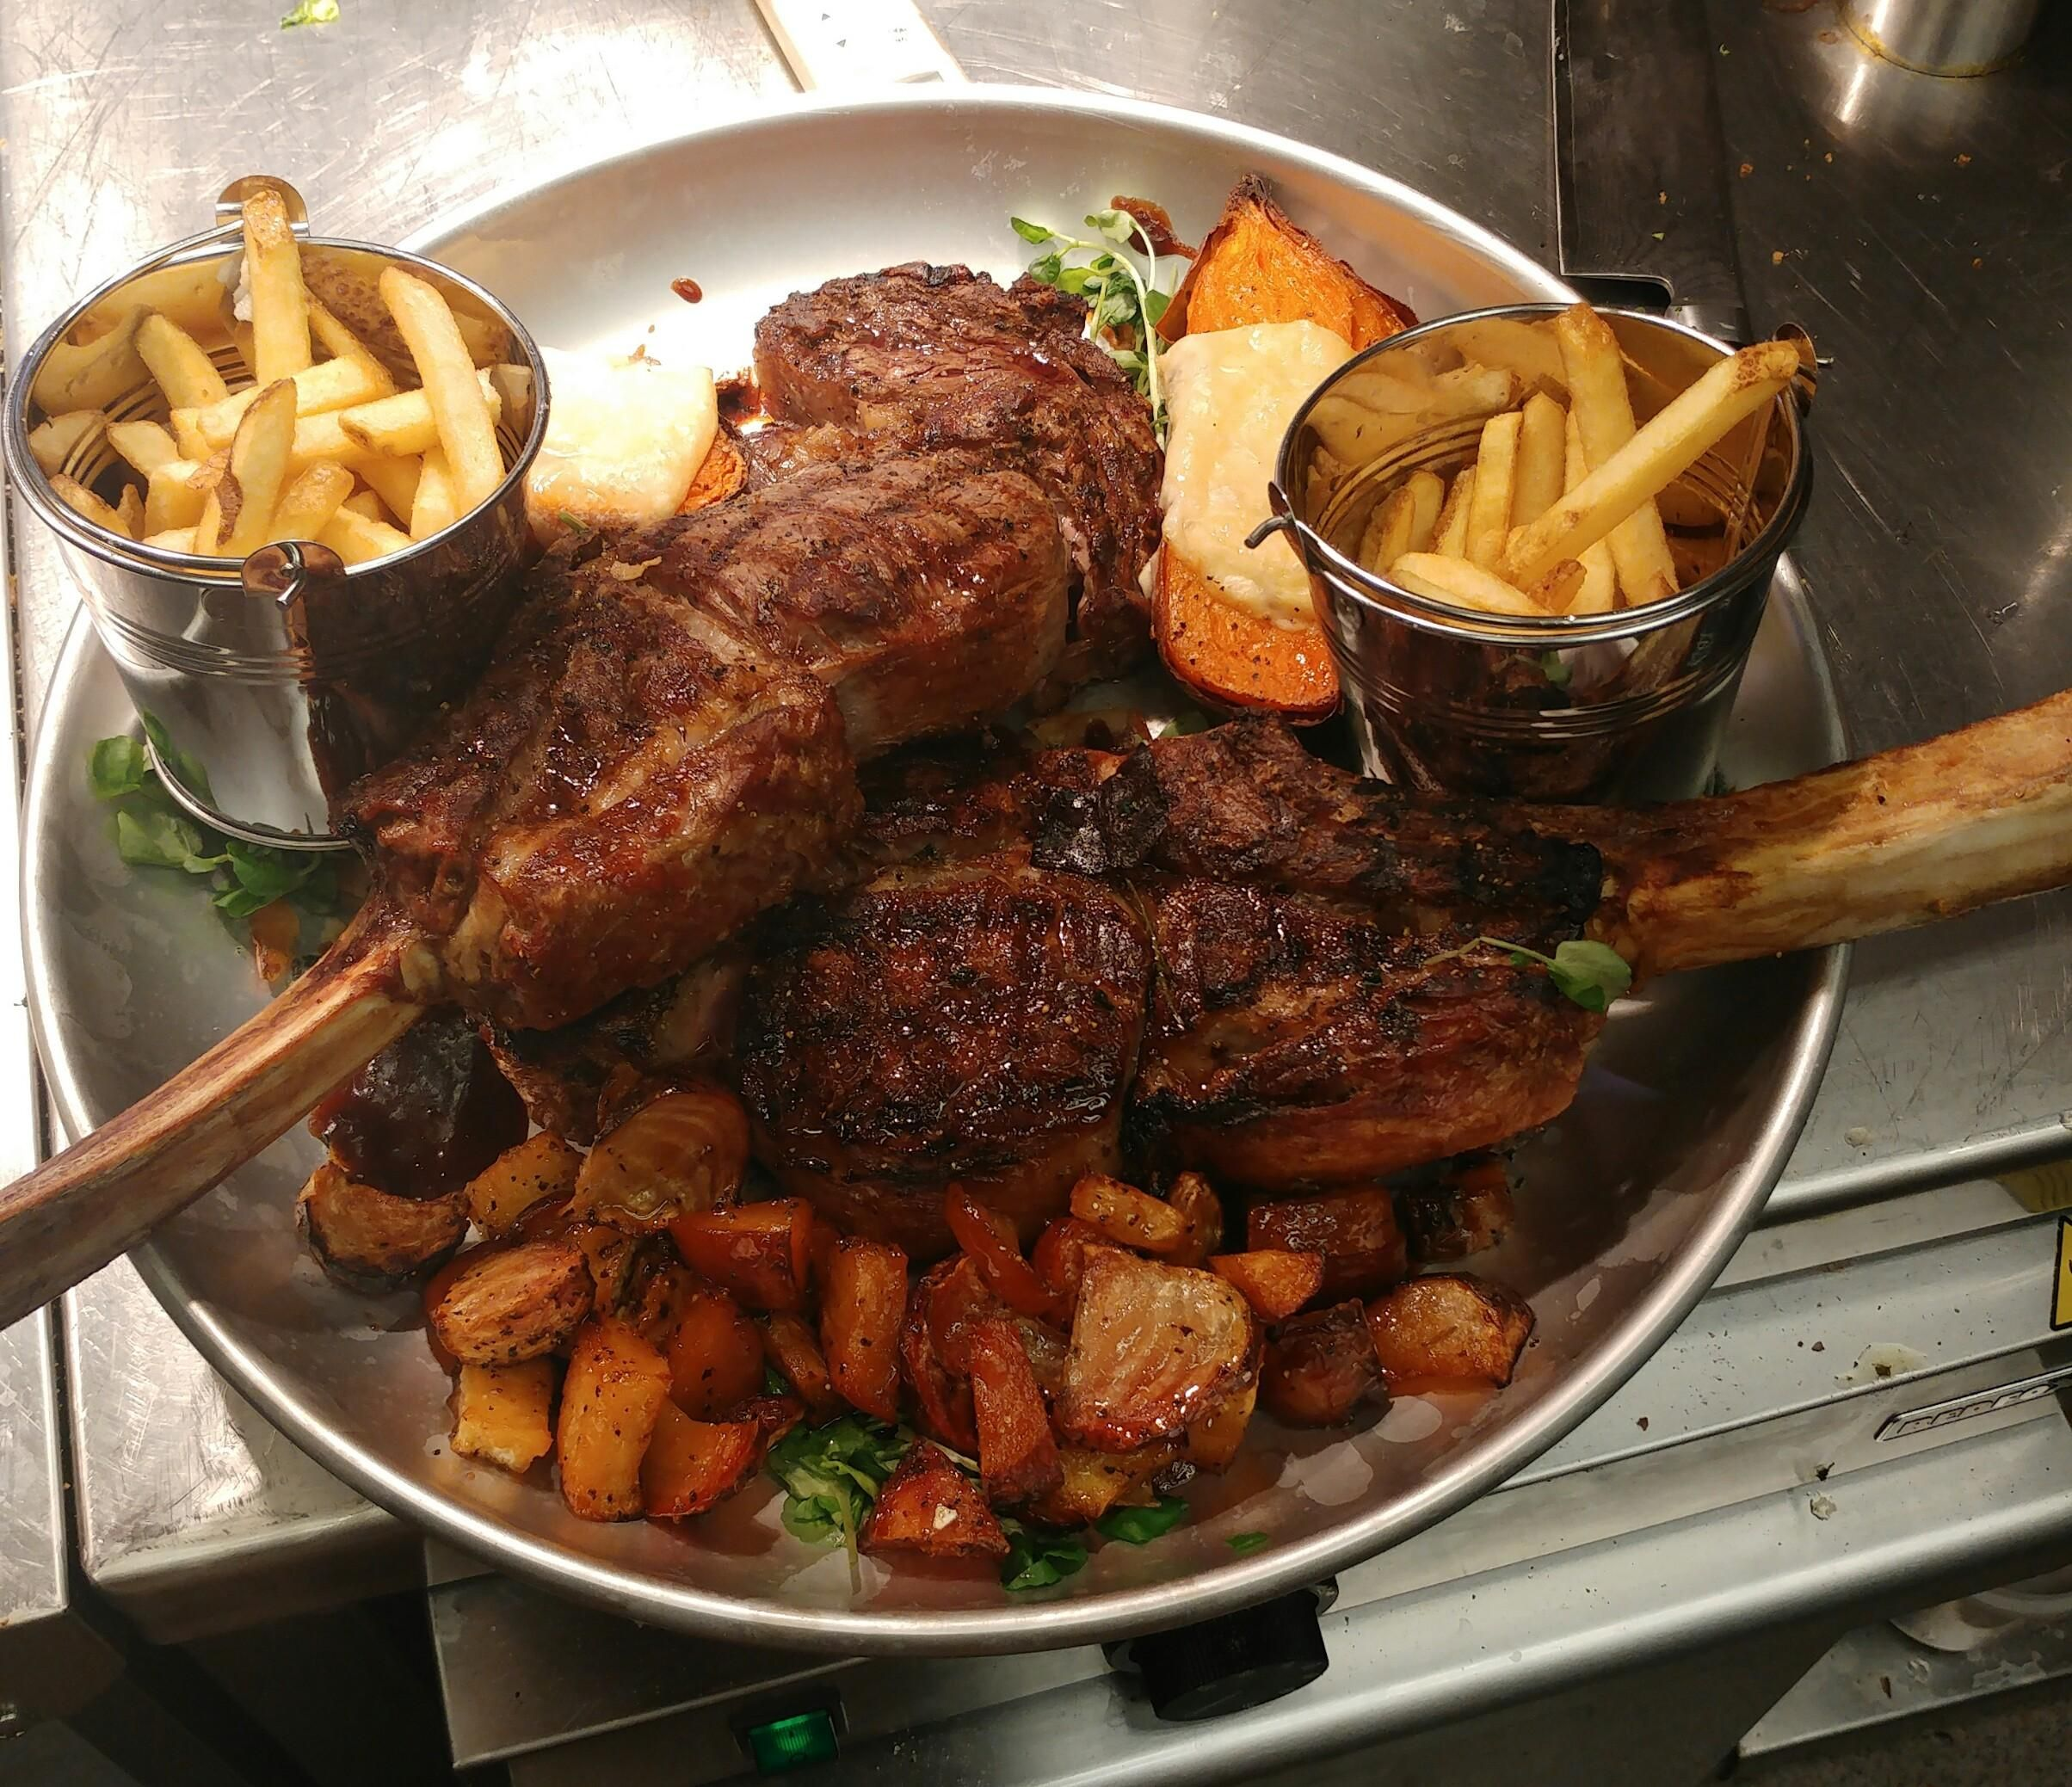 Pro Chef 2x 900 Gram Tomahawk Steaks With Sides Recipes Food Cooking Delicious Foodie Foodrecipes Cook Recipe Health Recipes Food Good Food